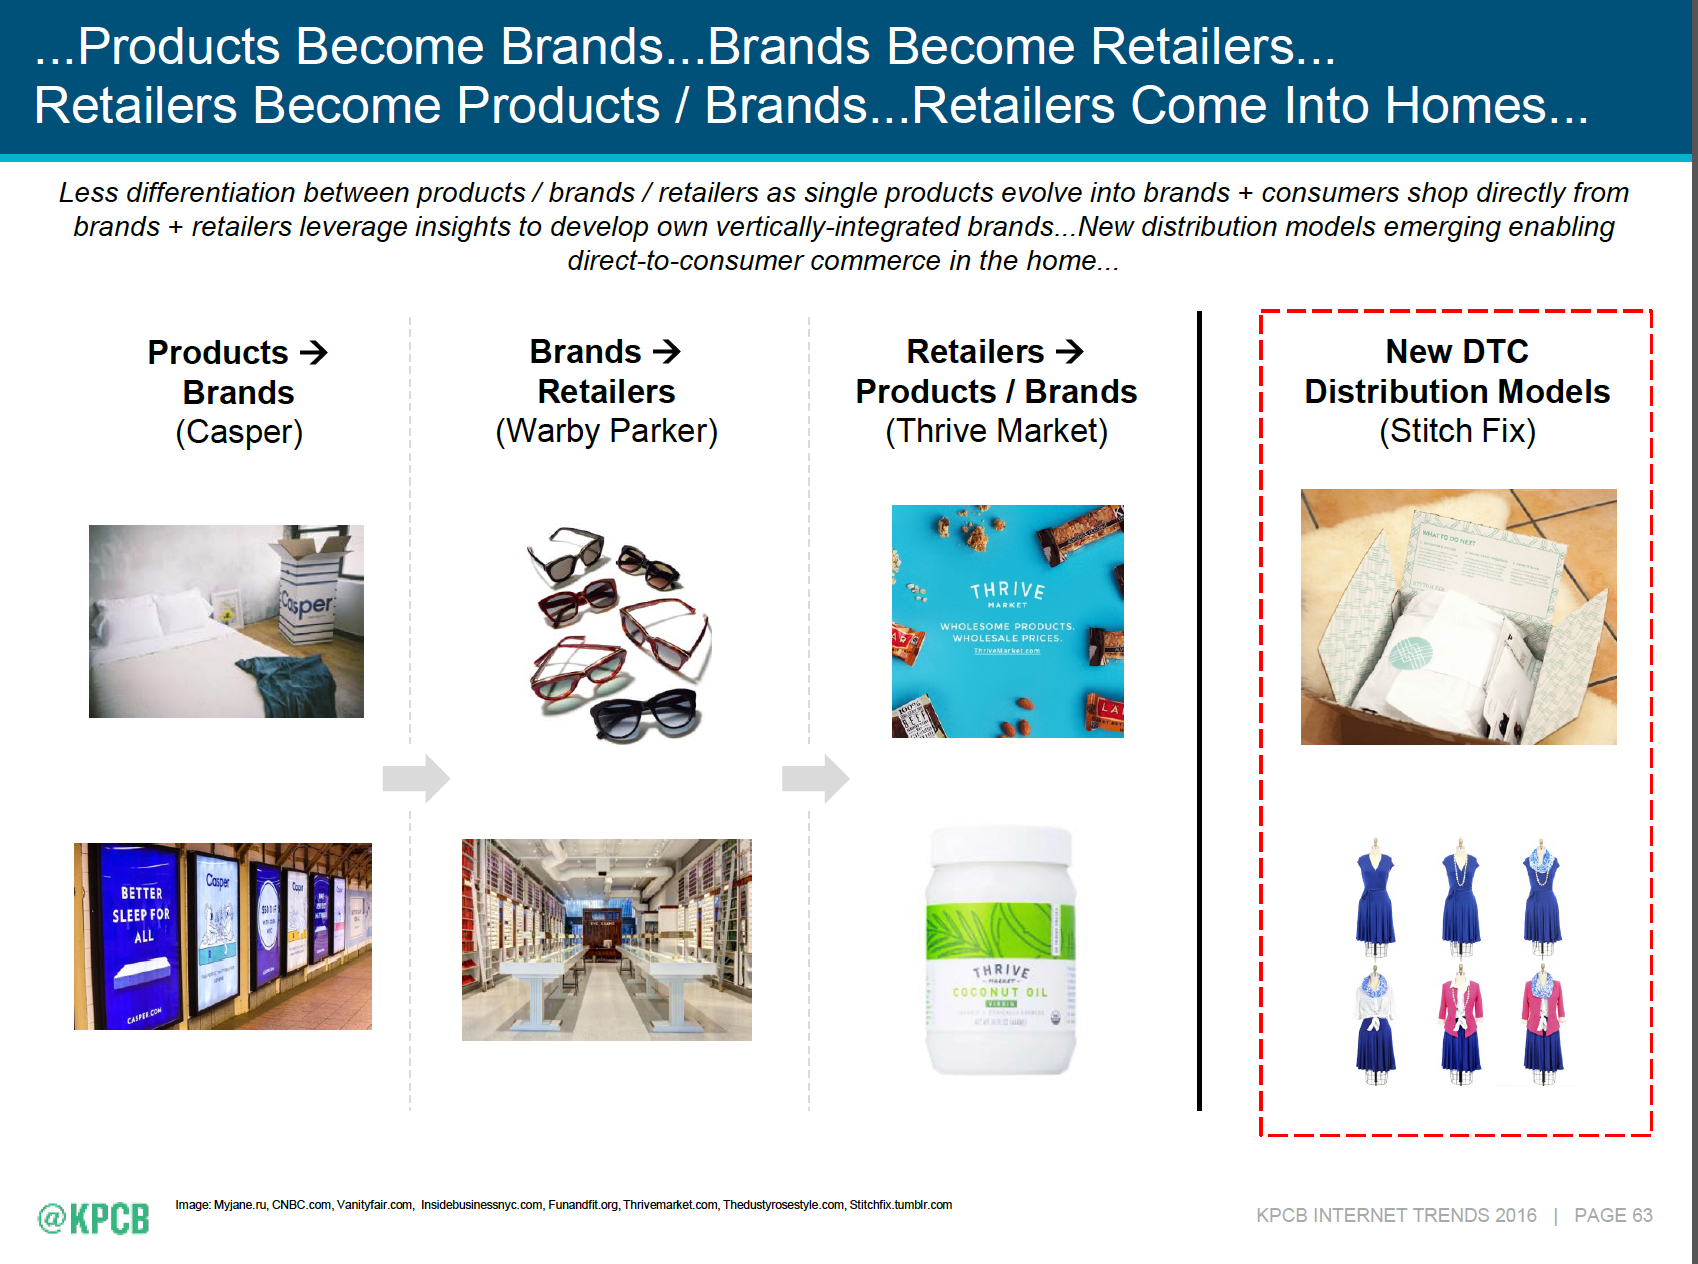 Emerging direct-to-consumer distribution channels - Mary Meeker's 2016 Internet Trends Report